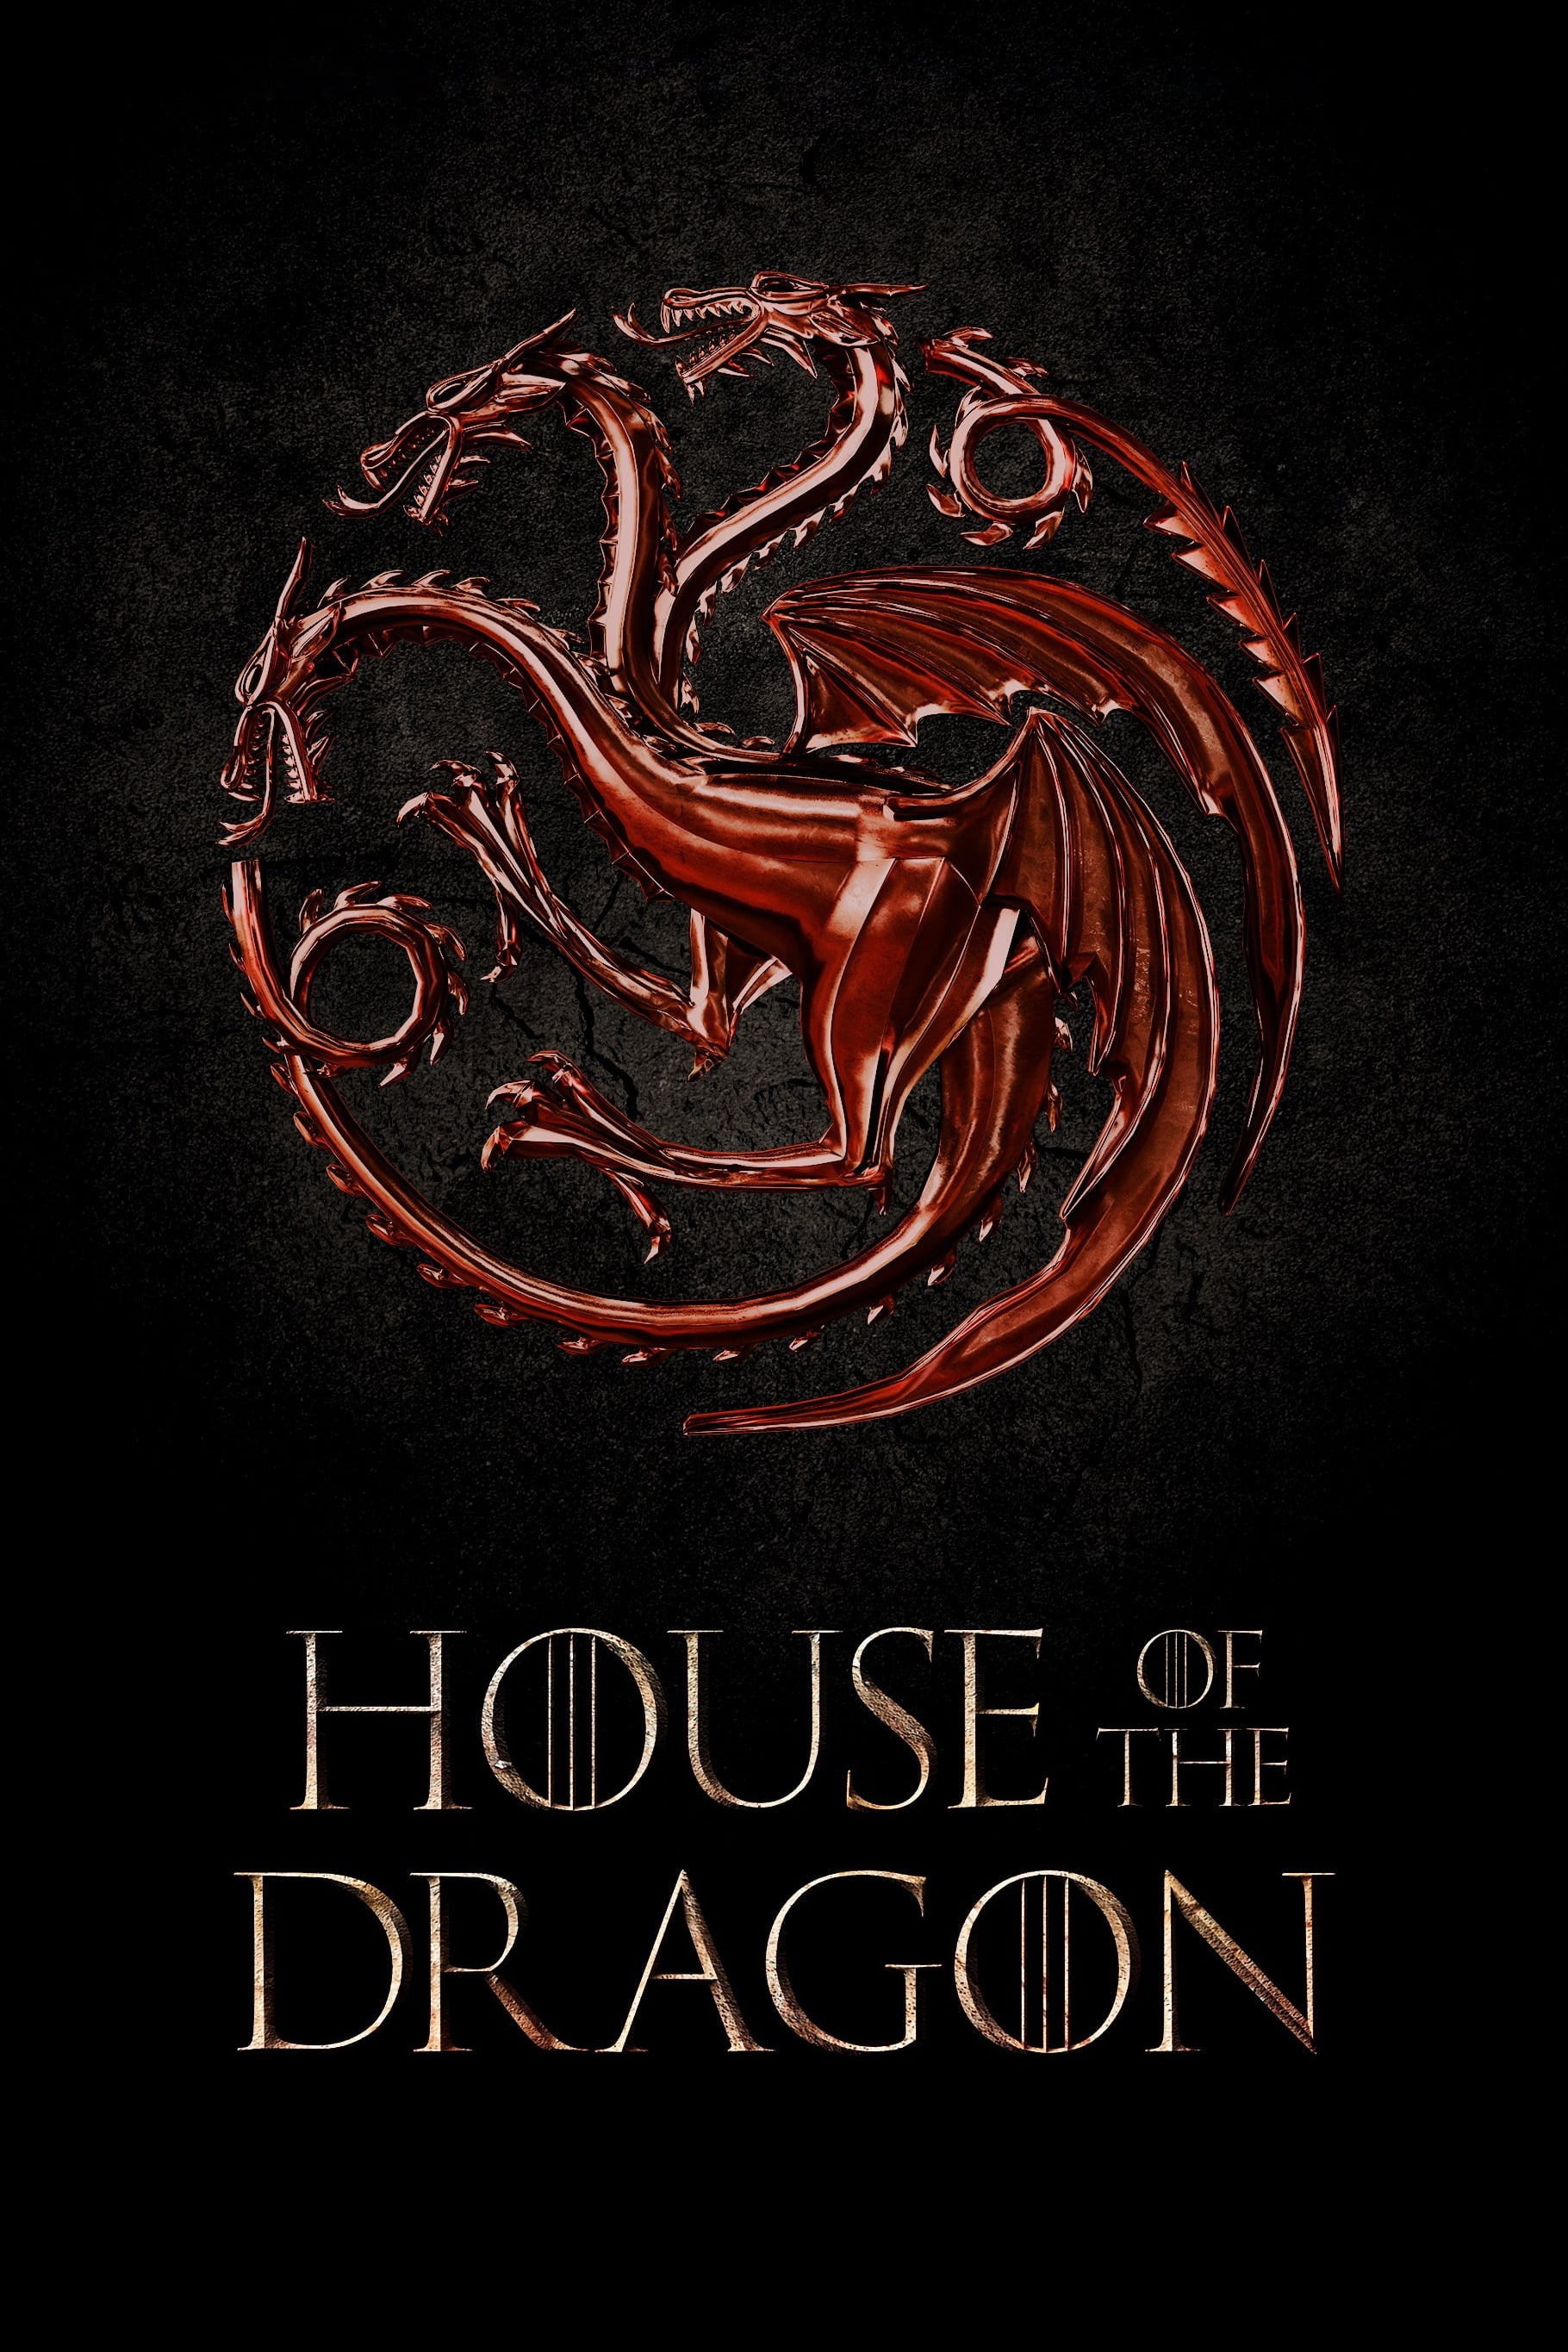 House of the Dragon (1970)